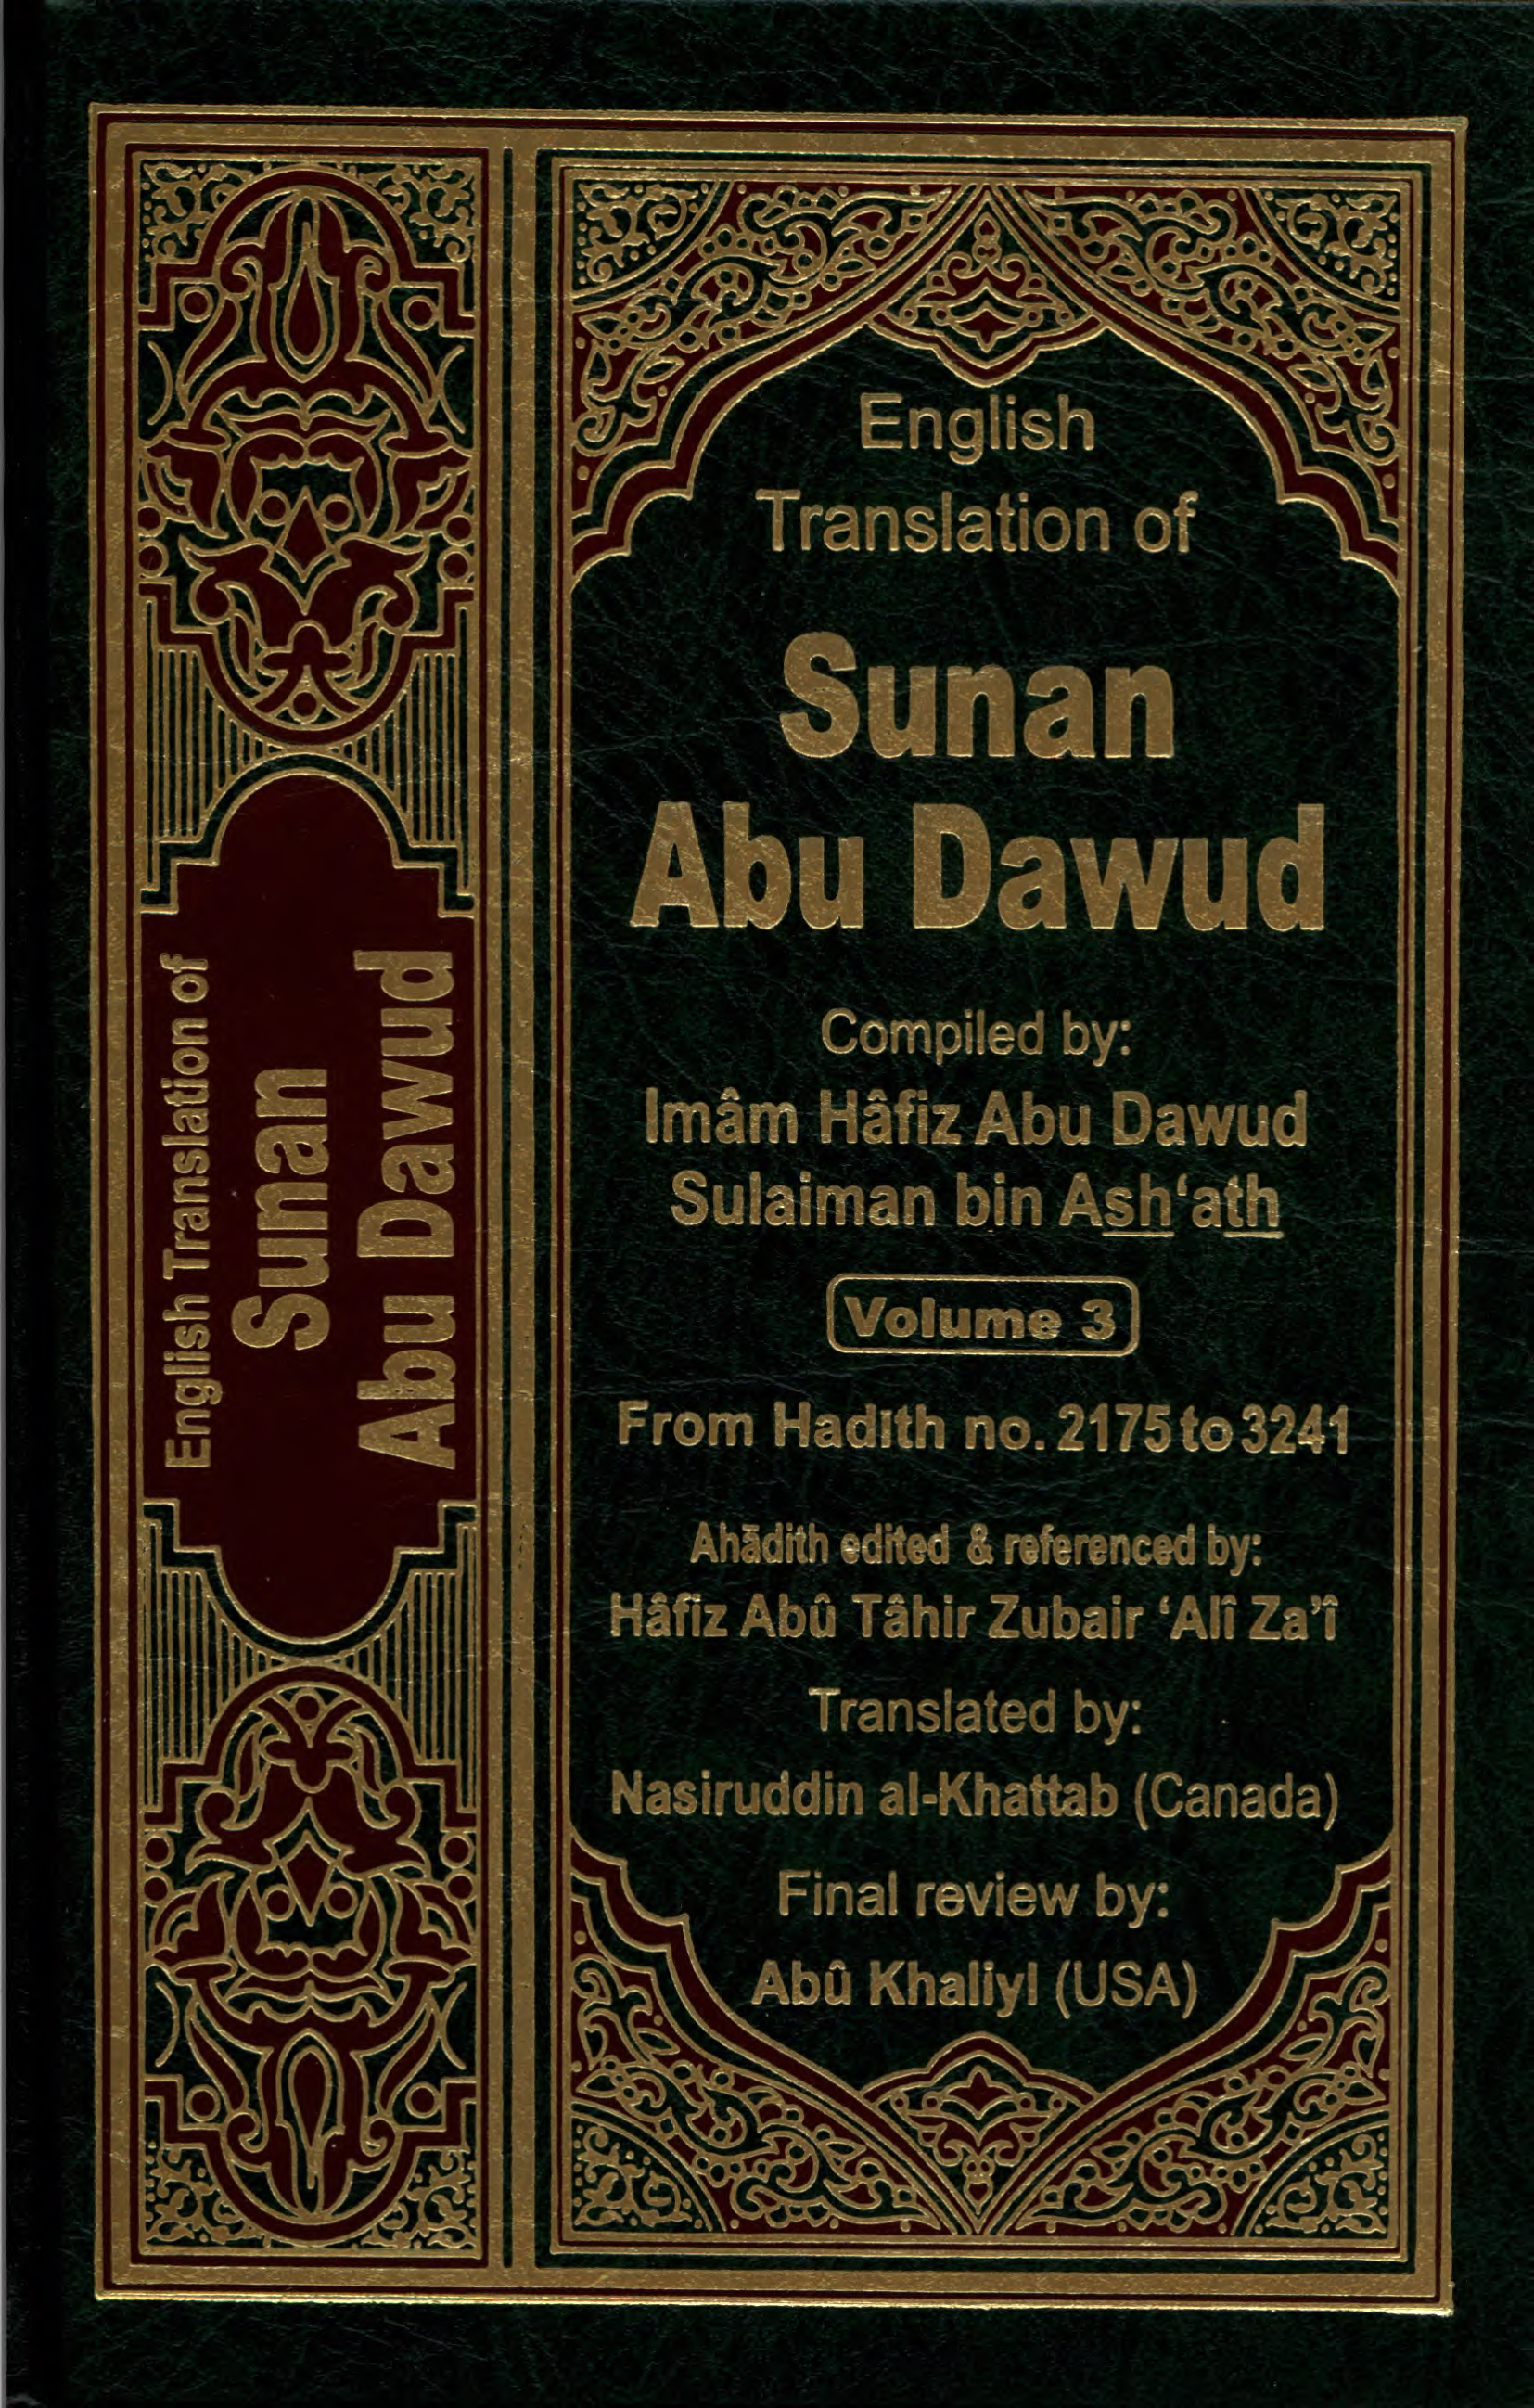 English Translation of Sunan Abu Dawud Volume 3 (from hadith 2175 to 3241)